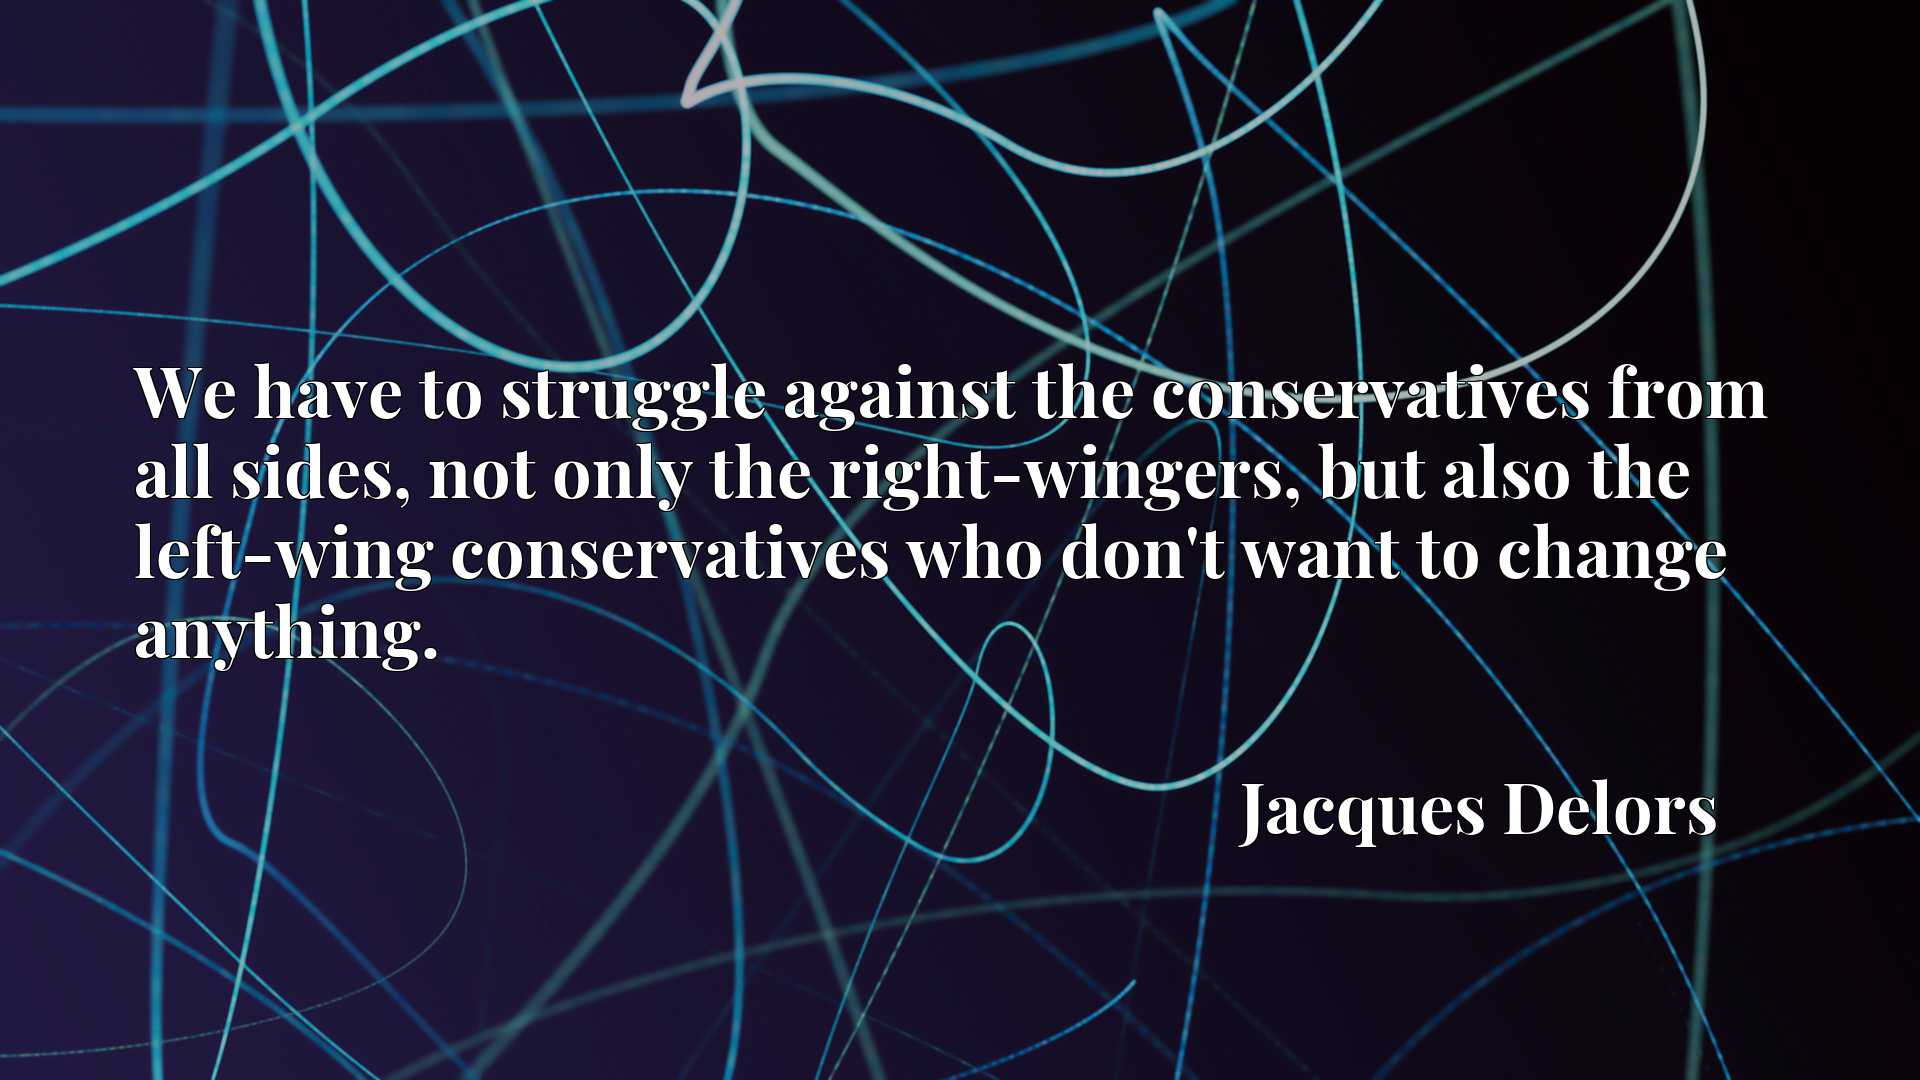 We have to struggle against the conservatives from all sides, not only the right-wingers, but also the left-wing conservatives who don't want to change anything.